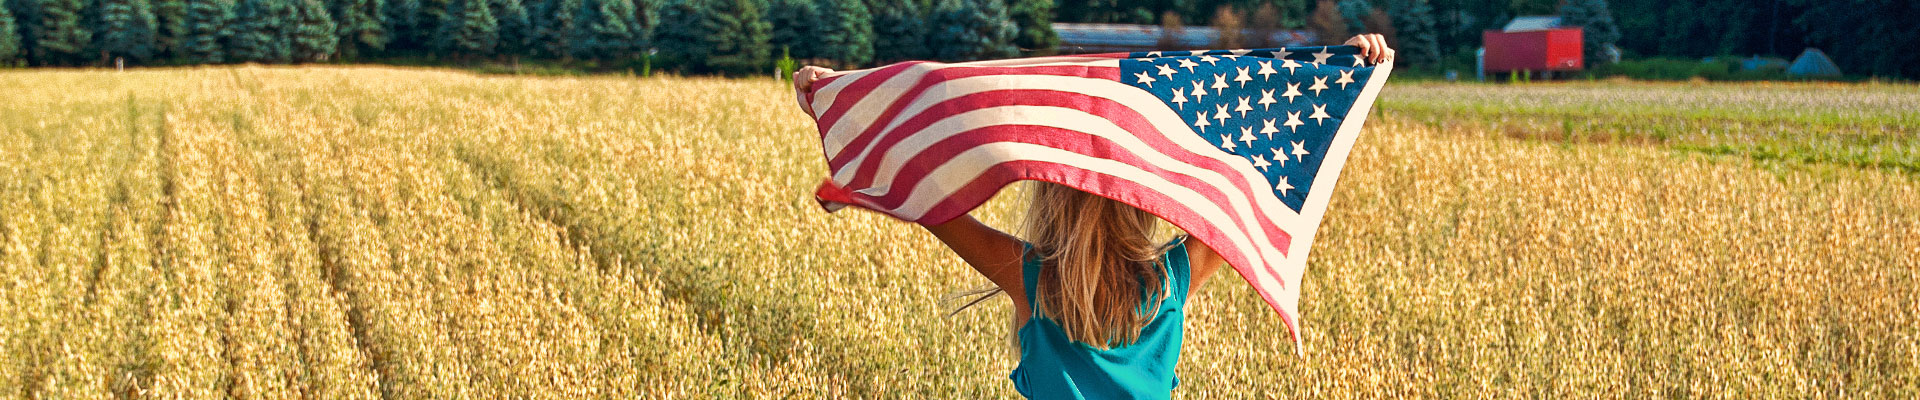 Young child walking through a field with the American Flag raised in the air.